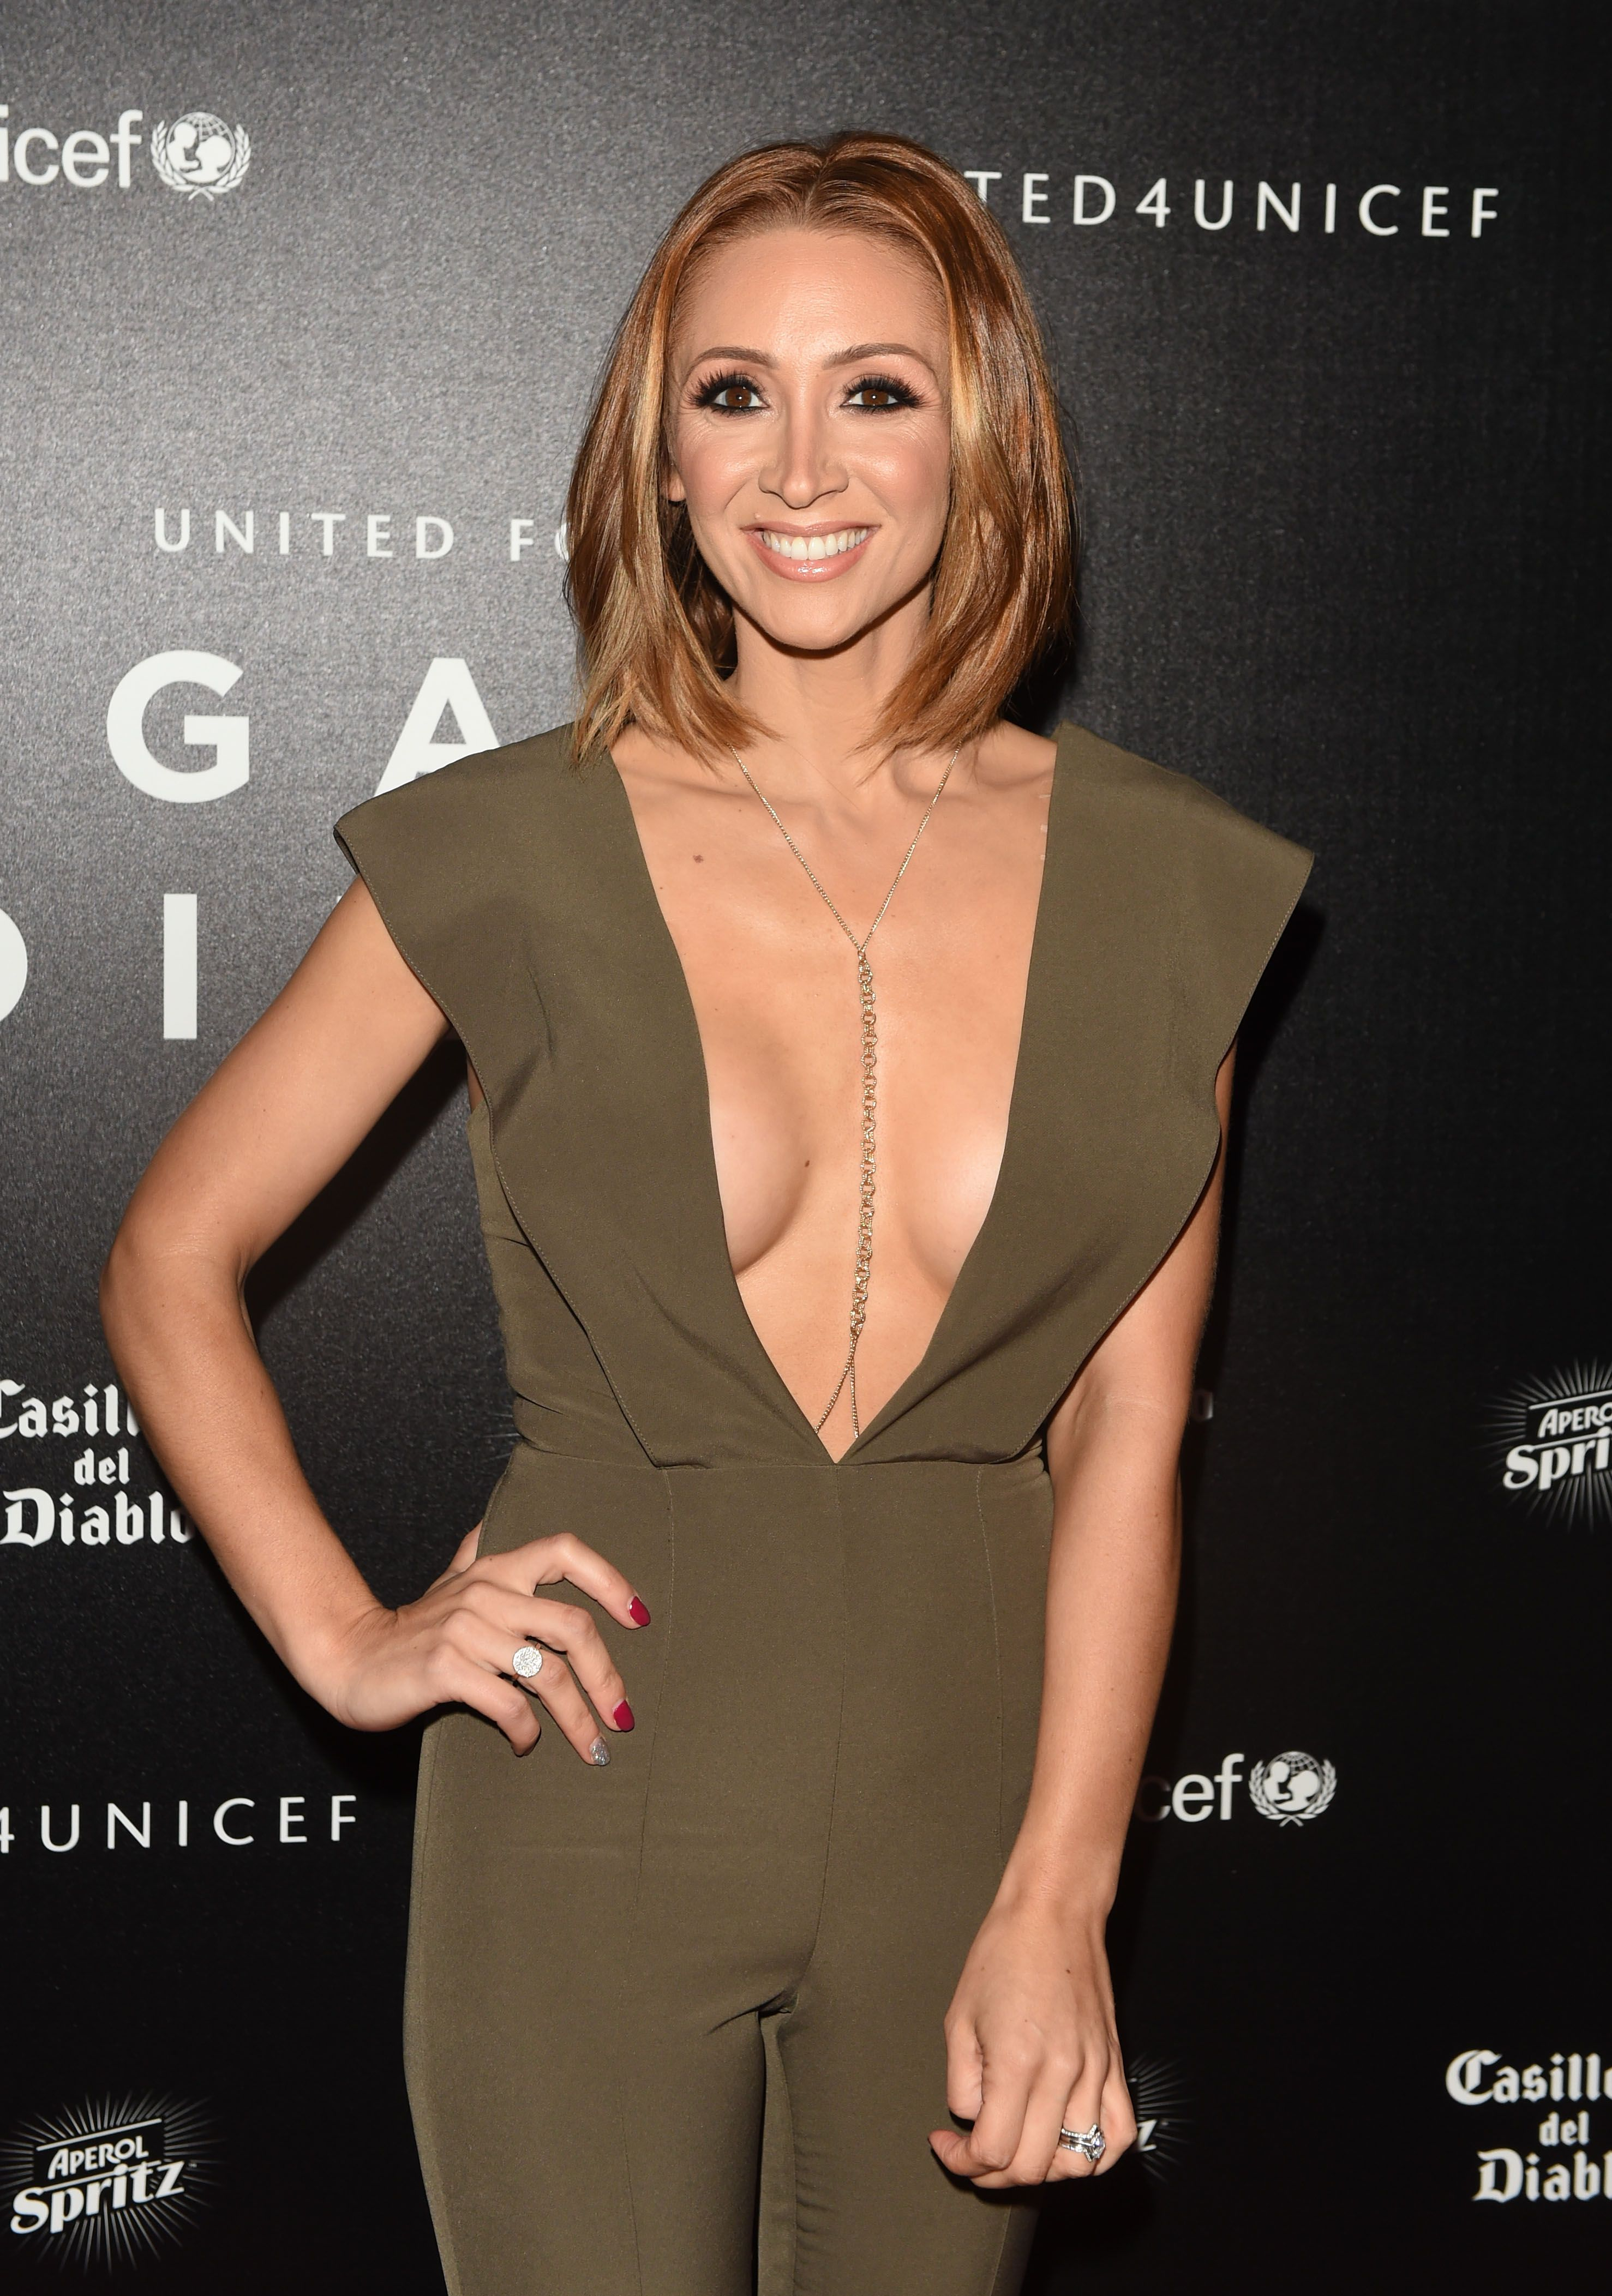 Lucy-Jo-Hudson-Cleavage-3